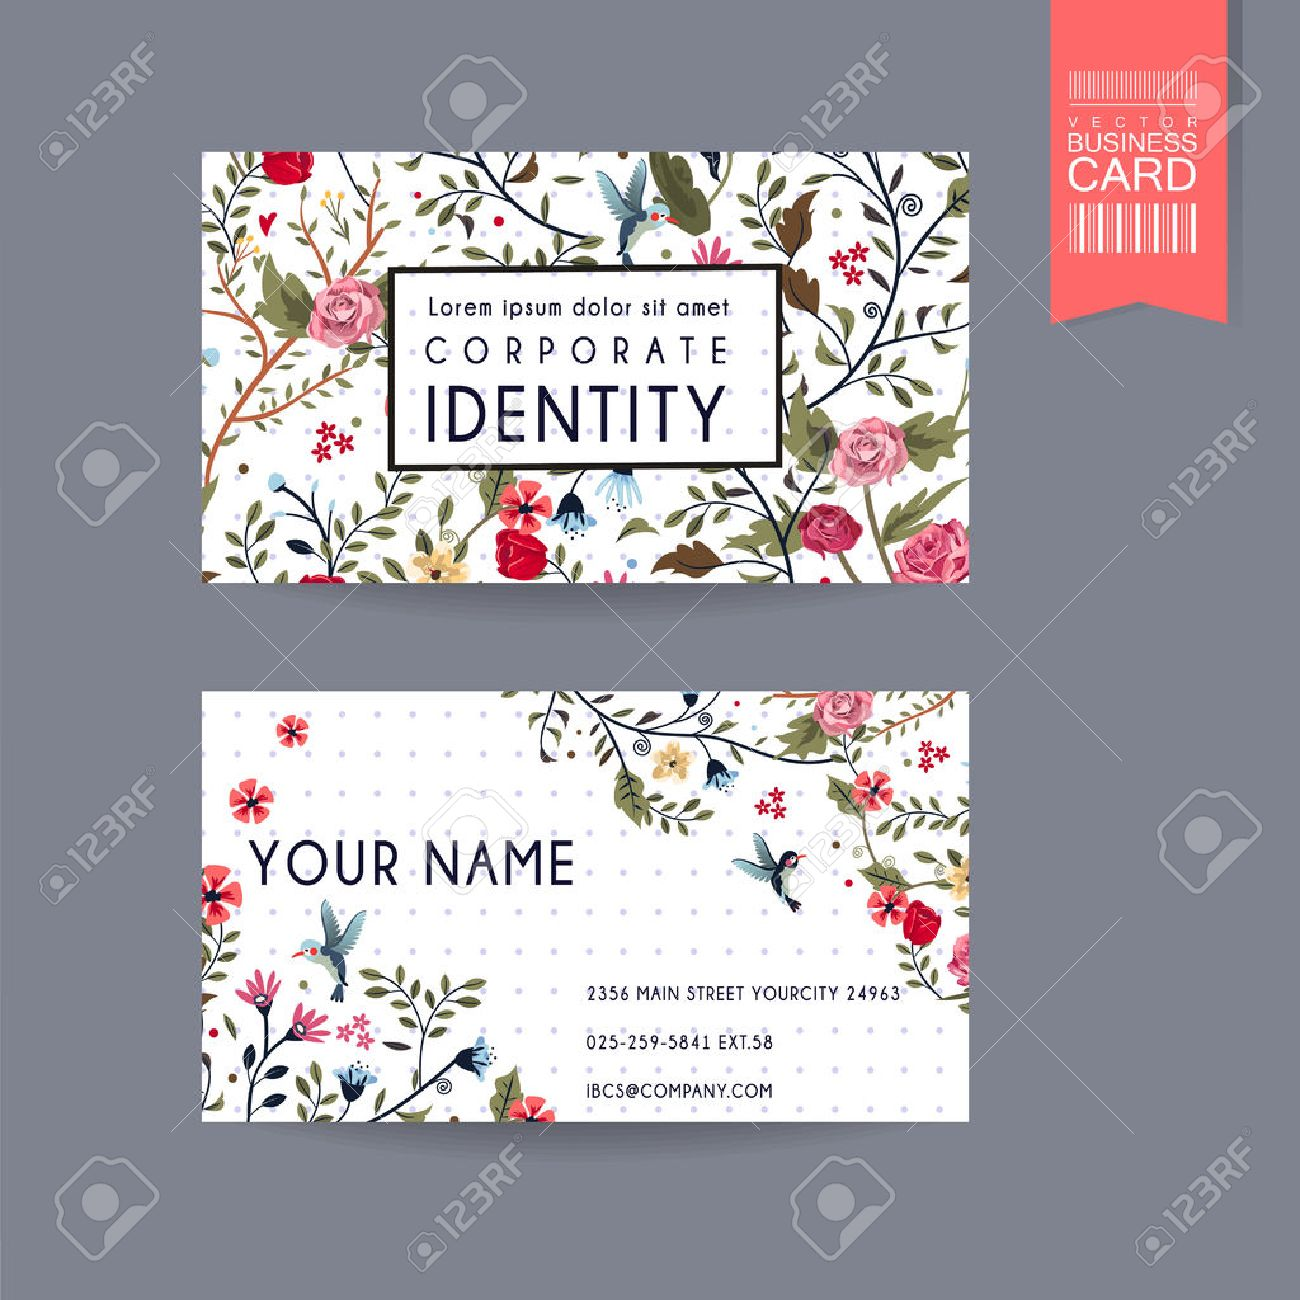 graceful business card design with lovely floral pattern over purple spotted white background Stock Vector - 37966786